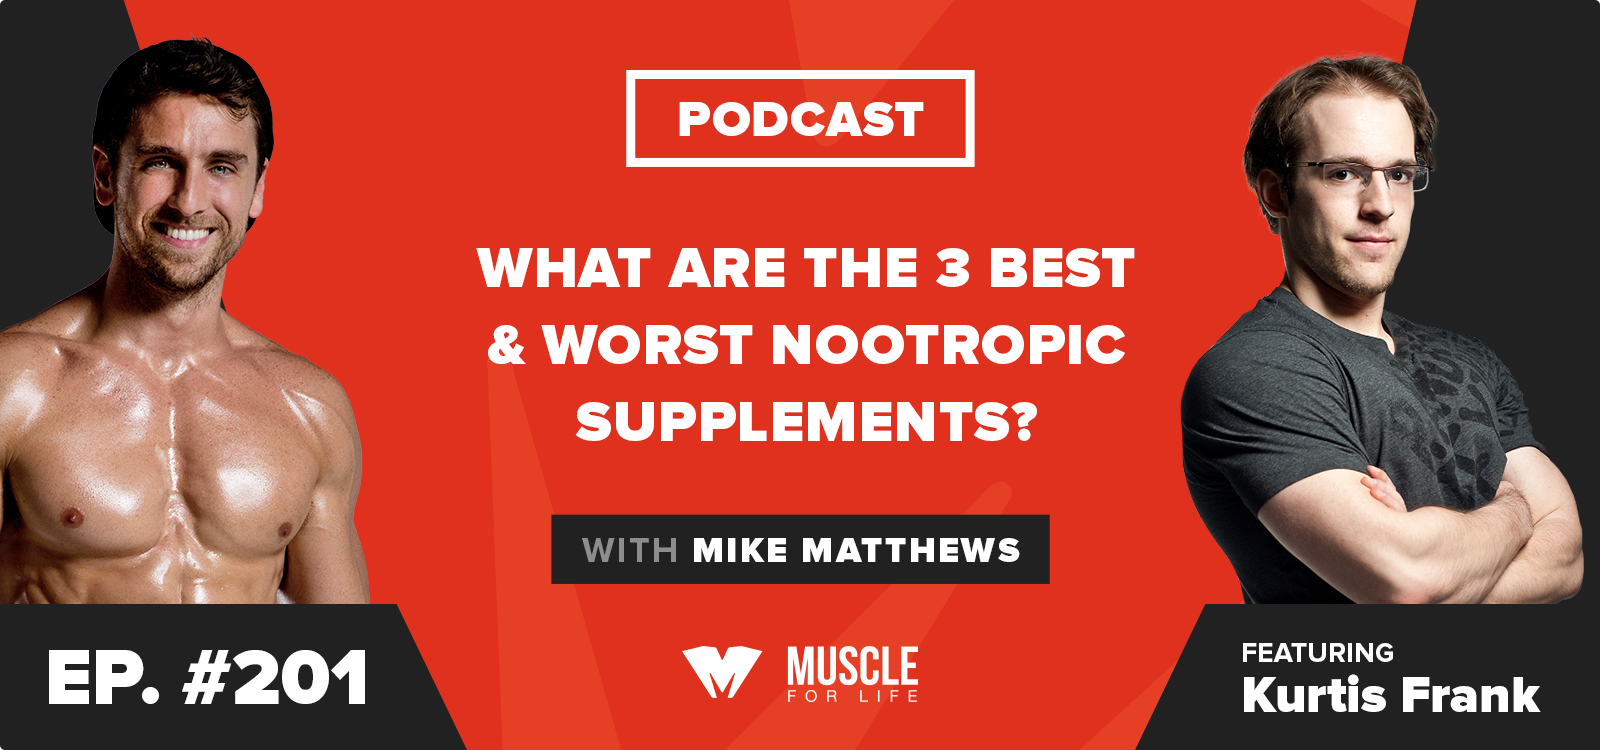 What Are the 3 Best & Worst Nootropic Supplements?